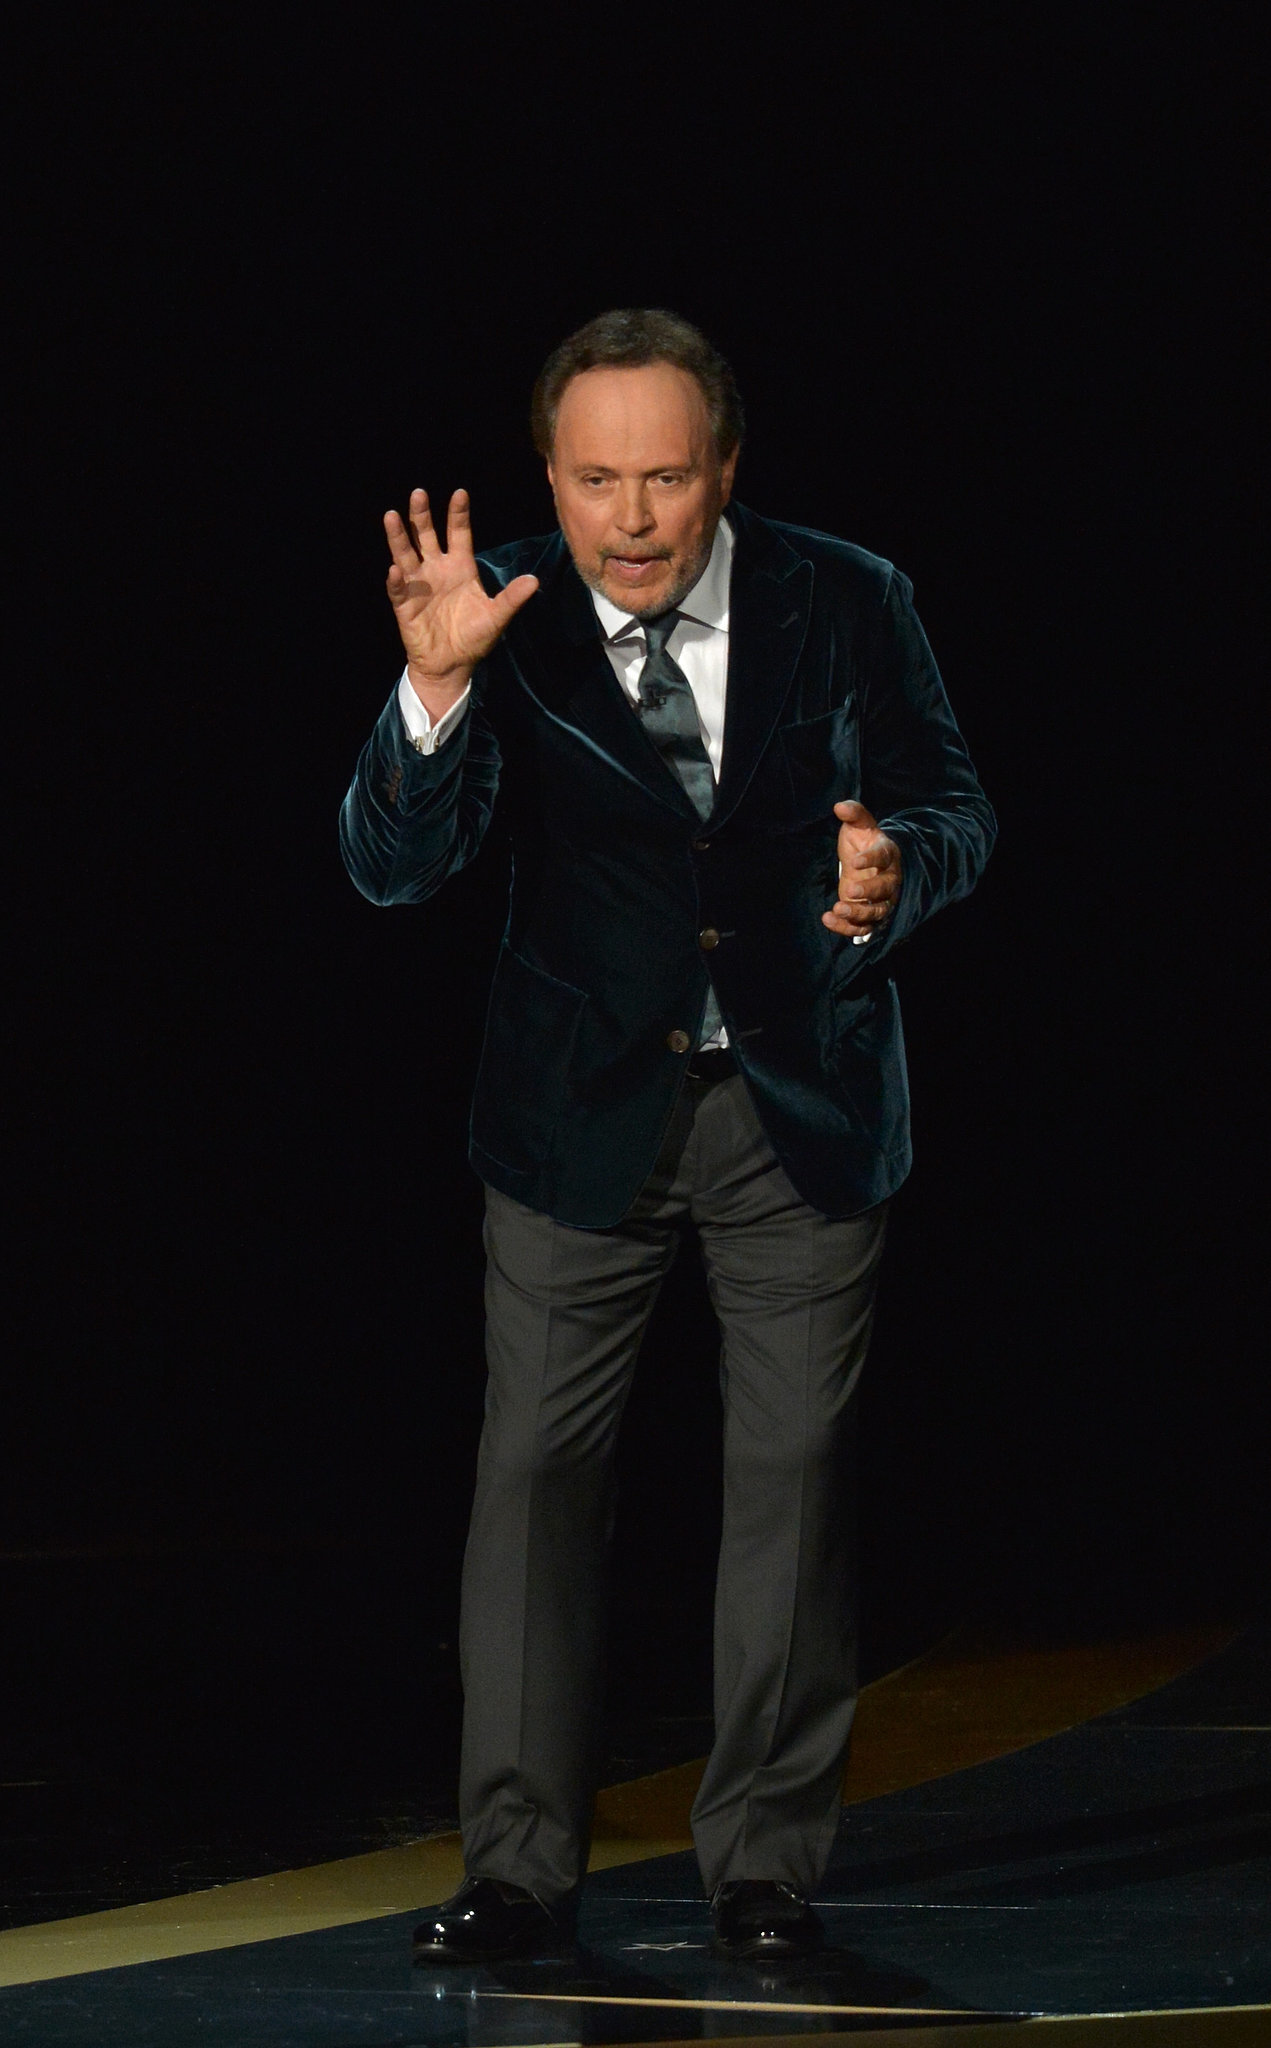 Billy Crystal paid a touching tribute to Robin Williams.